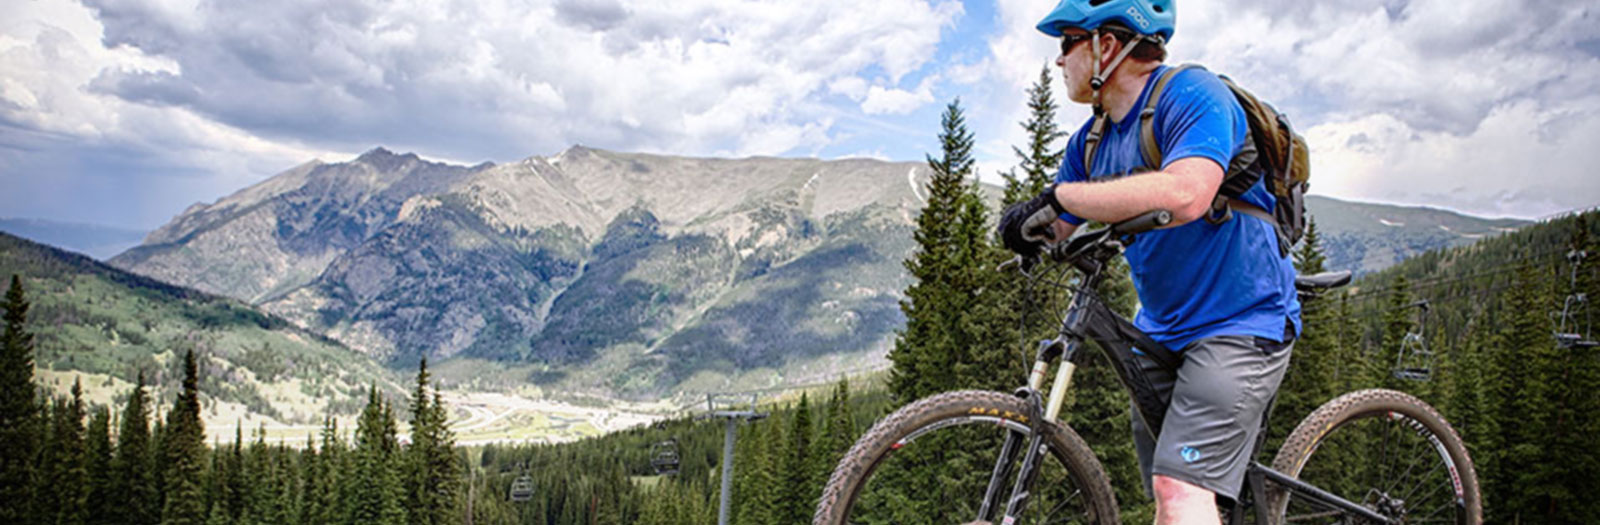 copper mountain biking